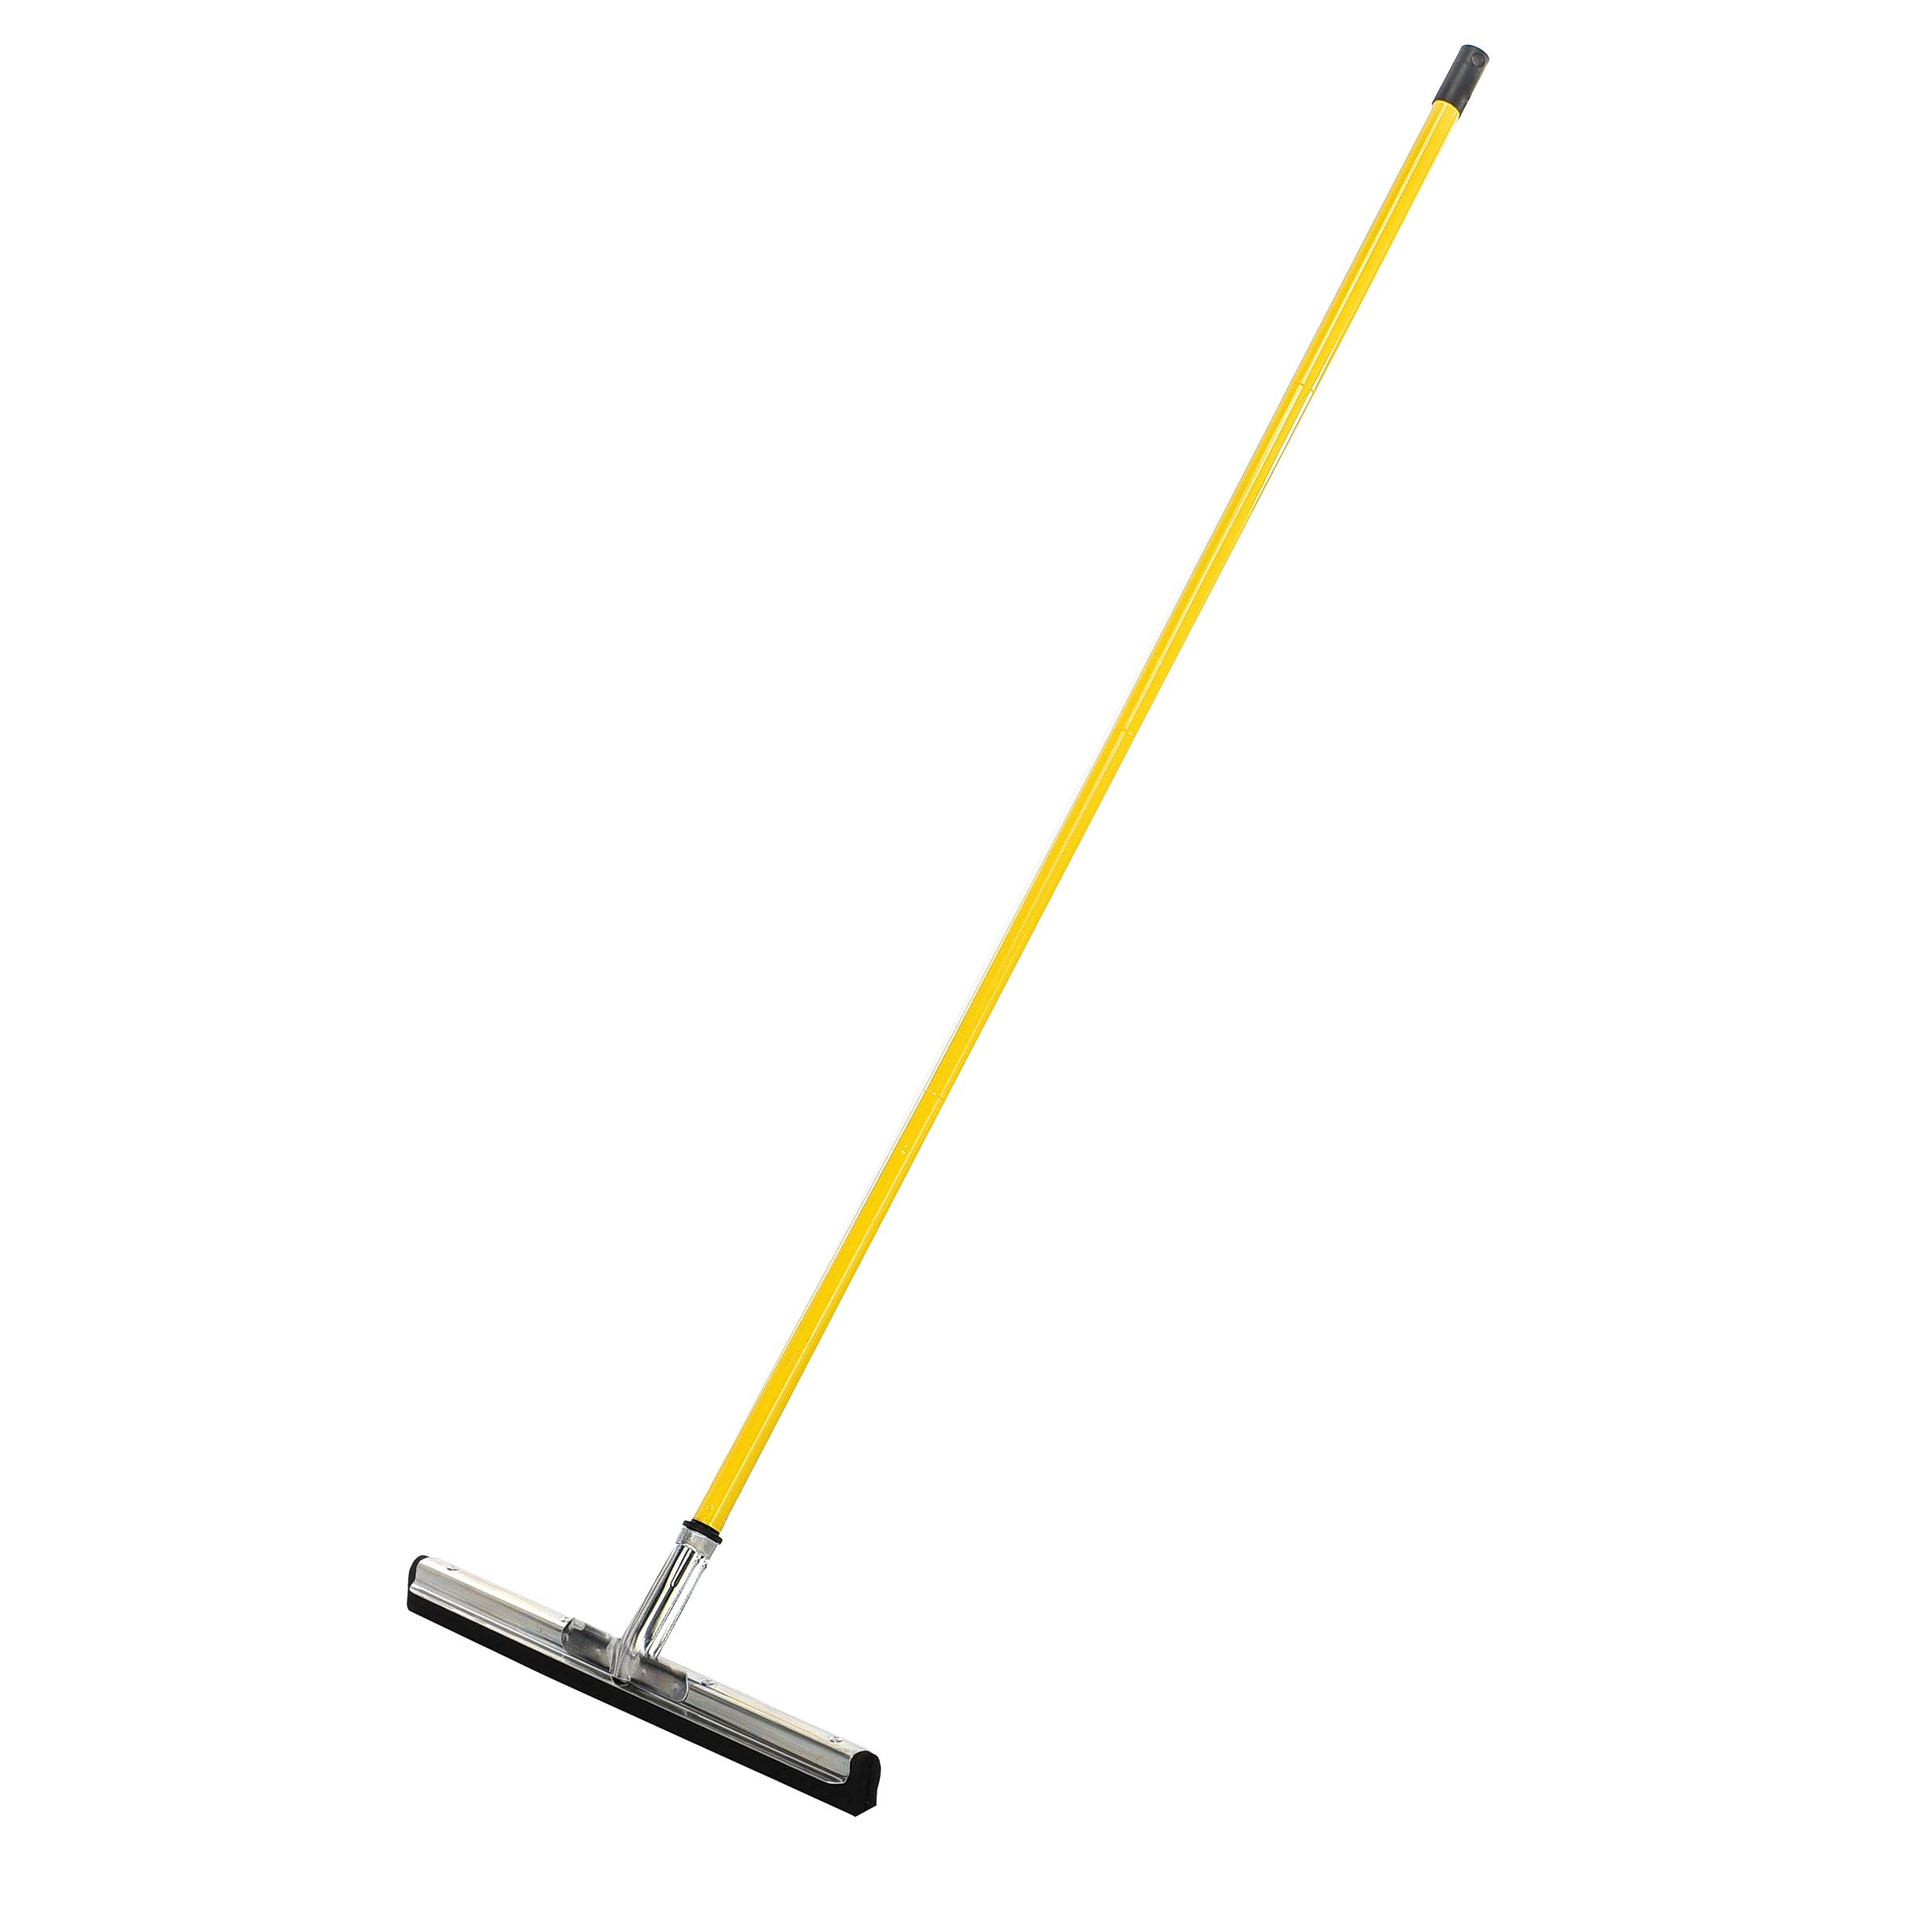 Alpine Industries Heavy-Duty Dual Moss Floor Squeegee with 50 Handle - Industrial Grade Soft Foam Replacement Head for Cleaning Wet & Dry Concrete, Wood & Tile Floors (22 in)